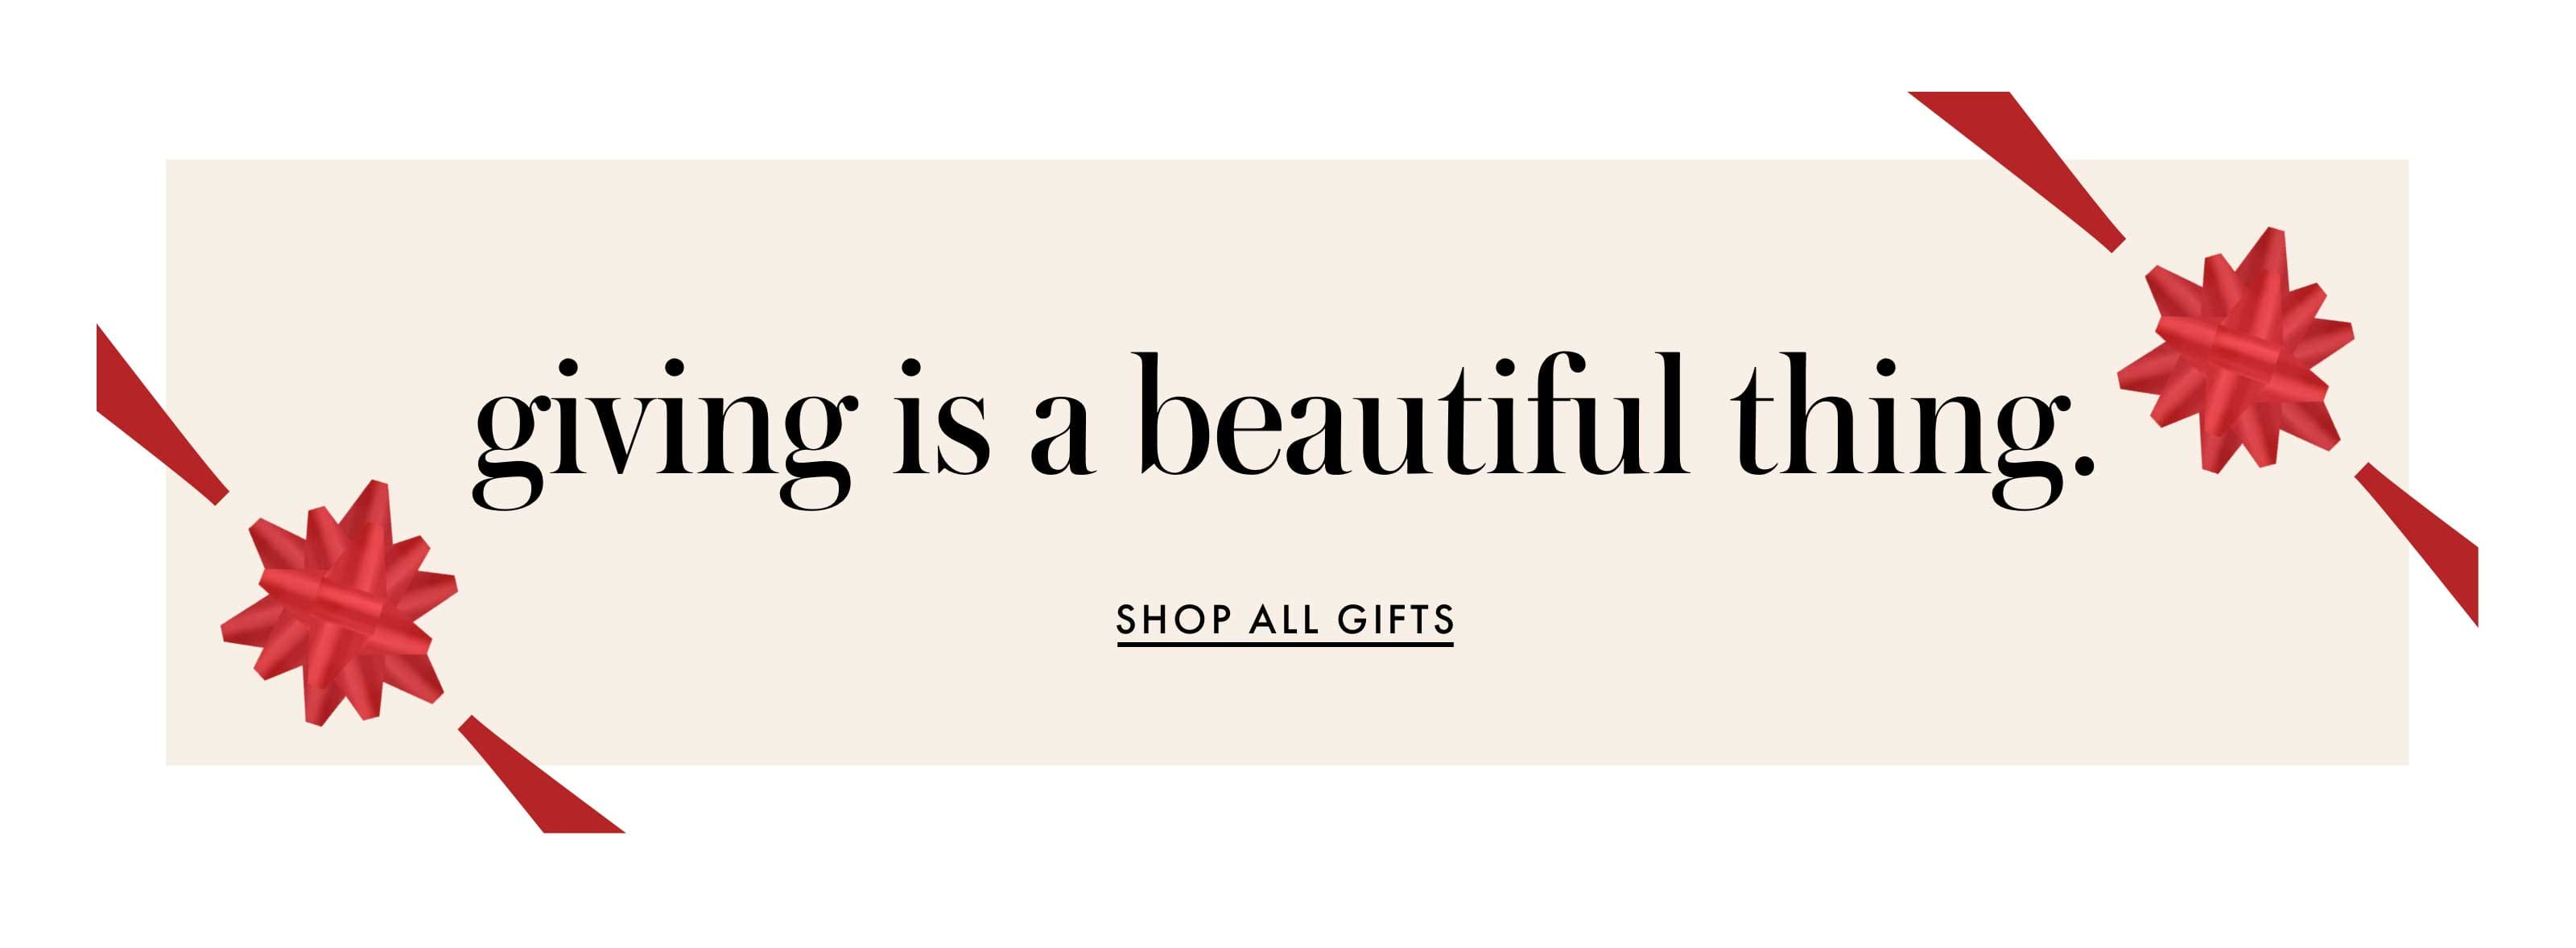 giving is a beautiful thing. shop all gifts